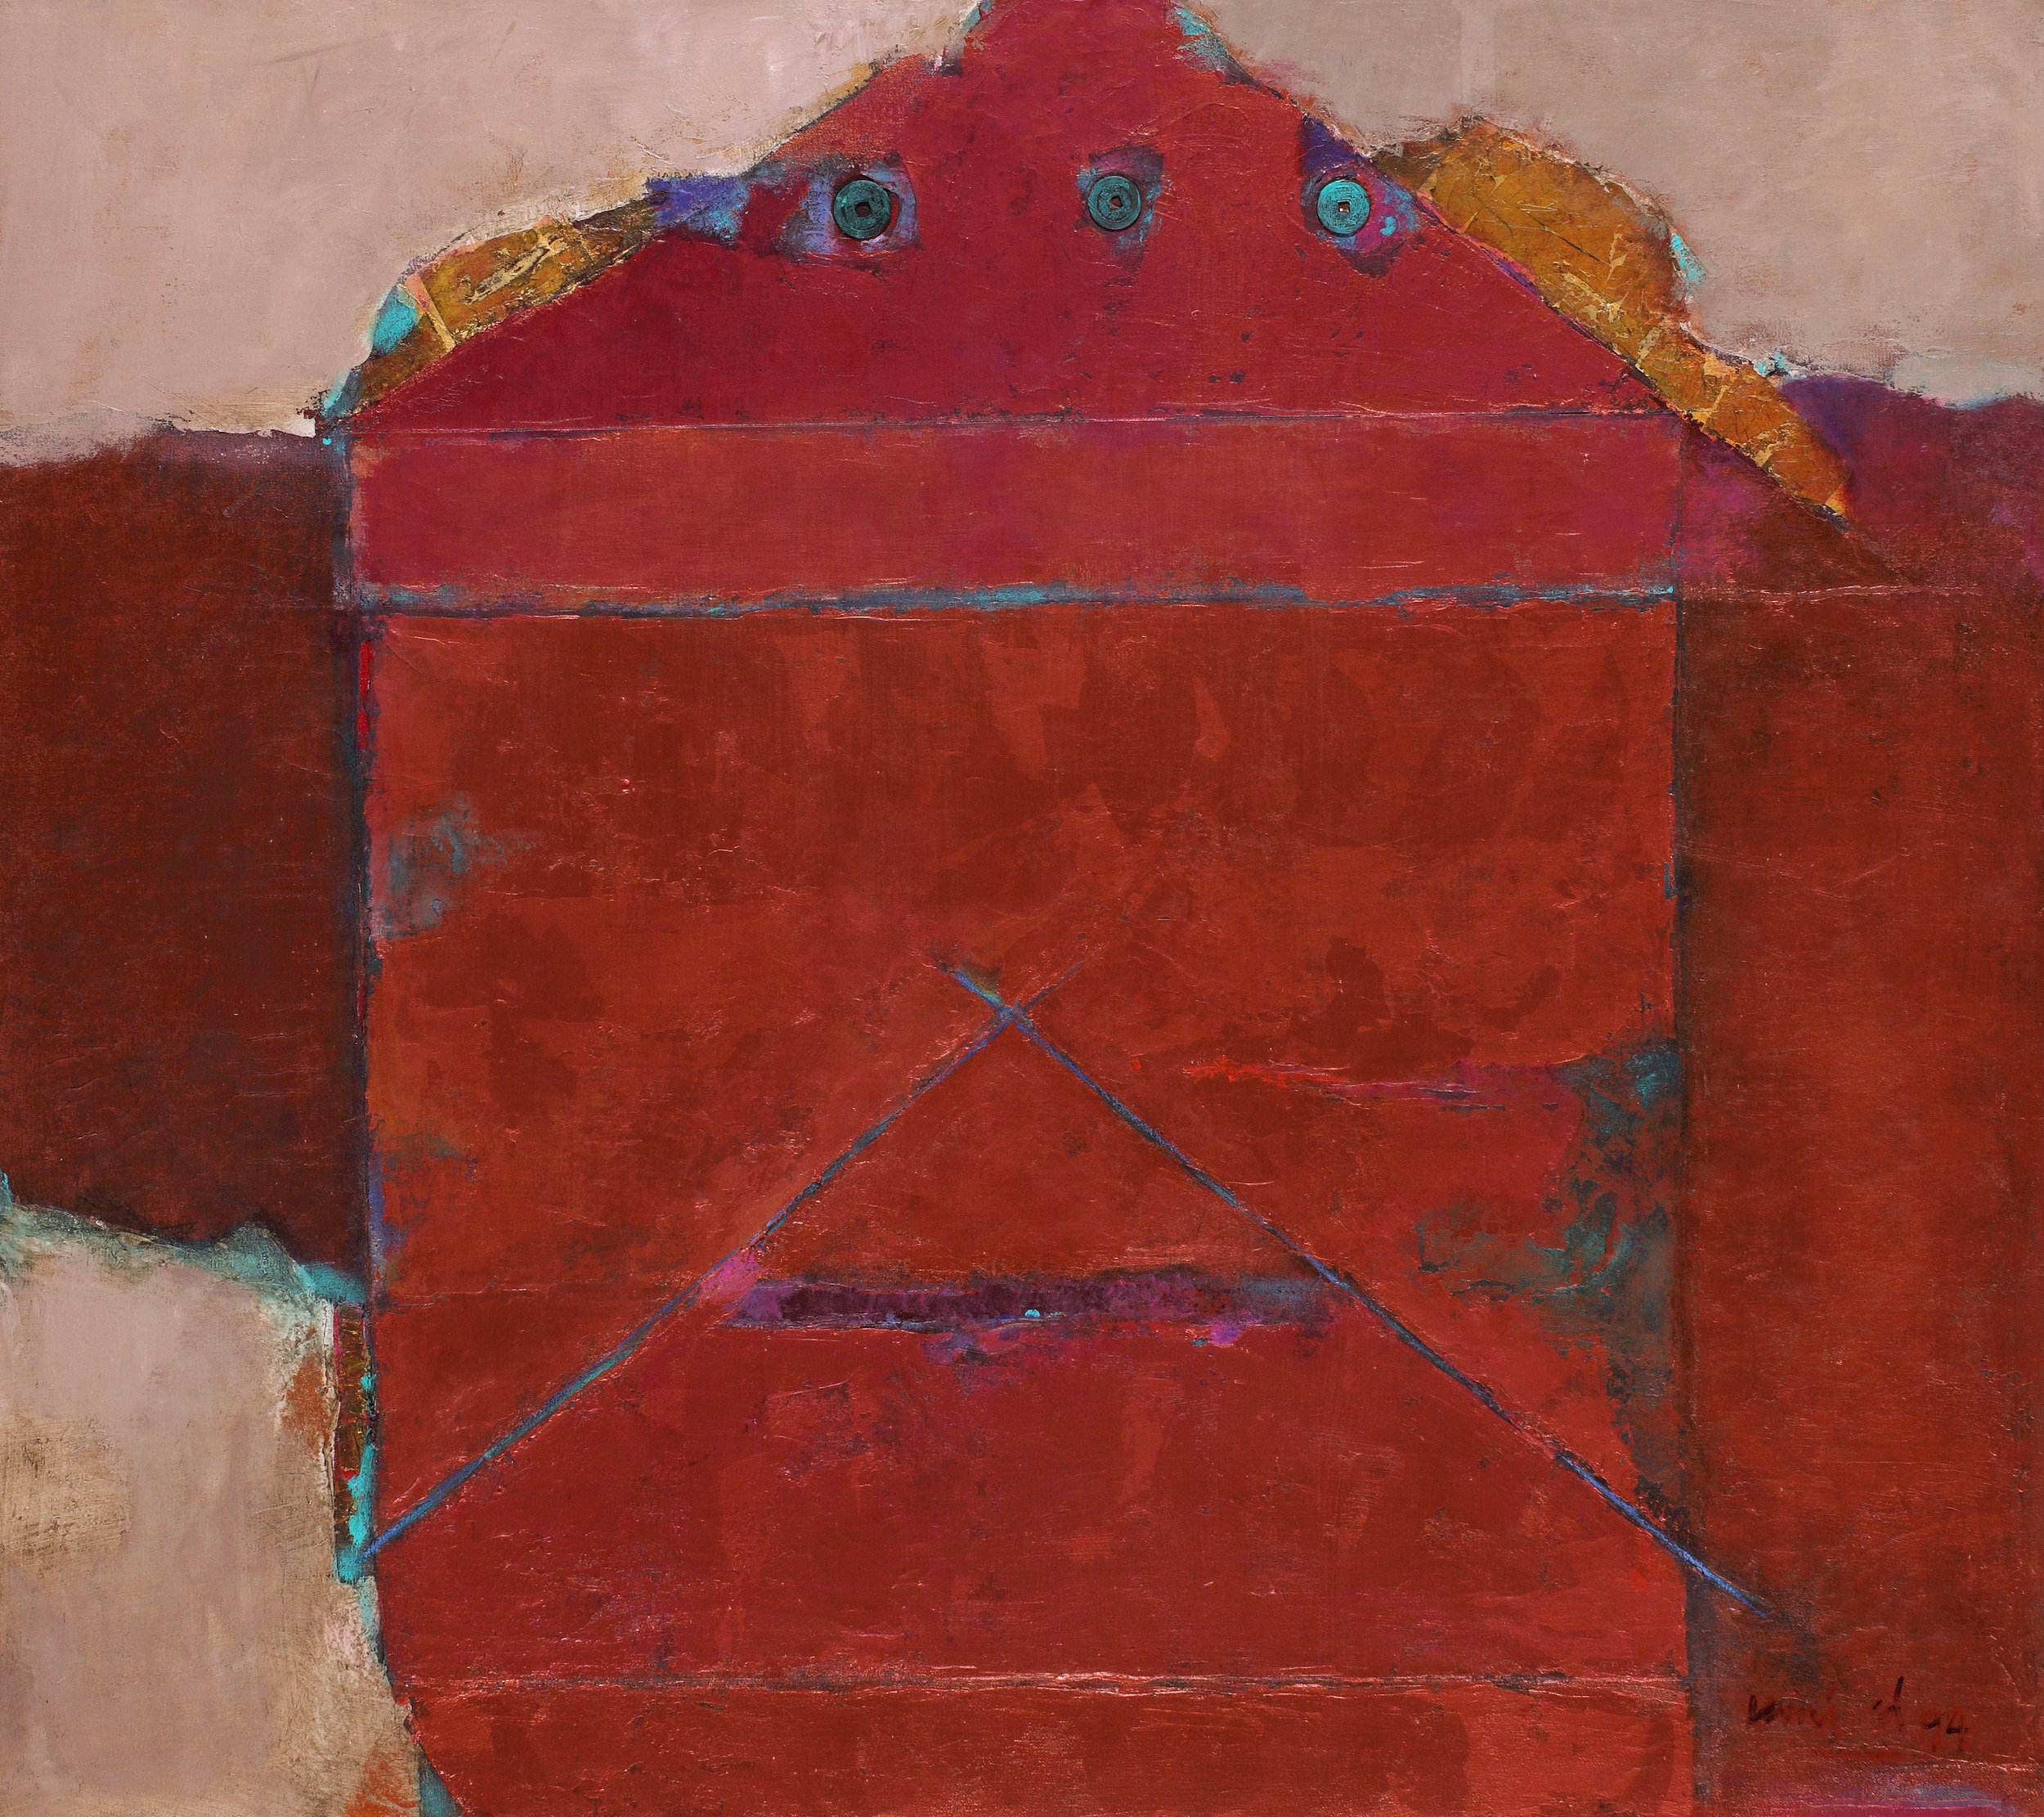 Umi Dahlan, The Mystery of Antique Coin on Copper Red, 1994, 80 x 90 cm